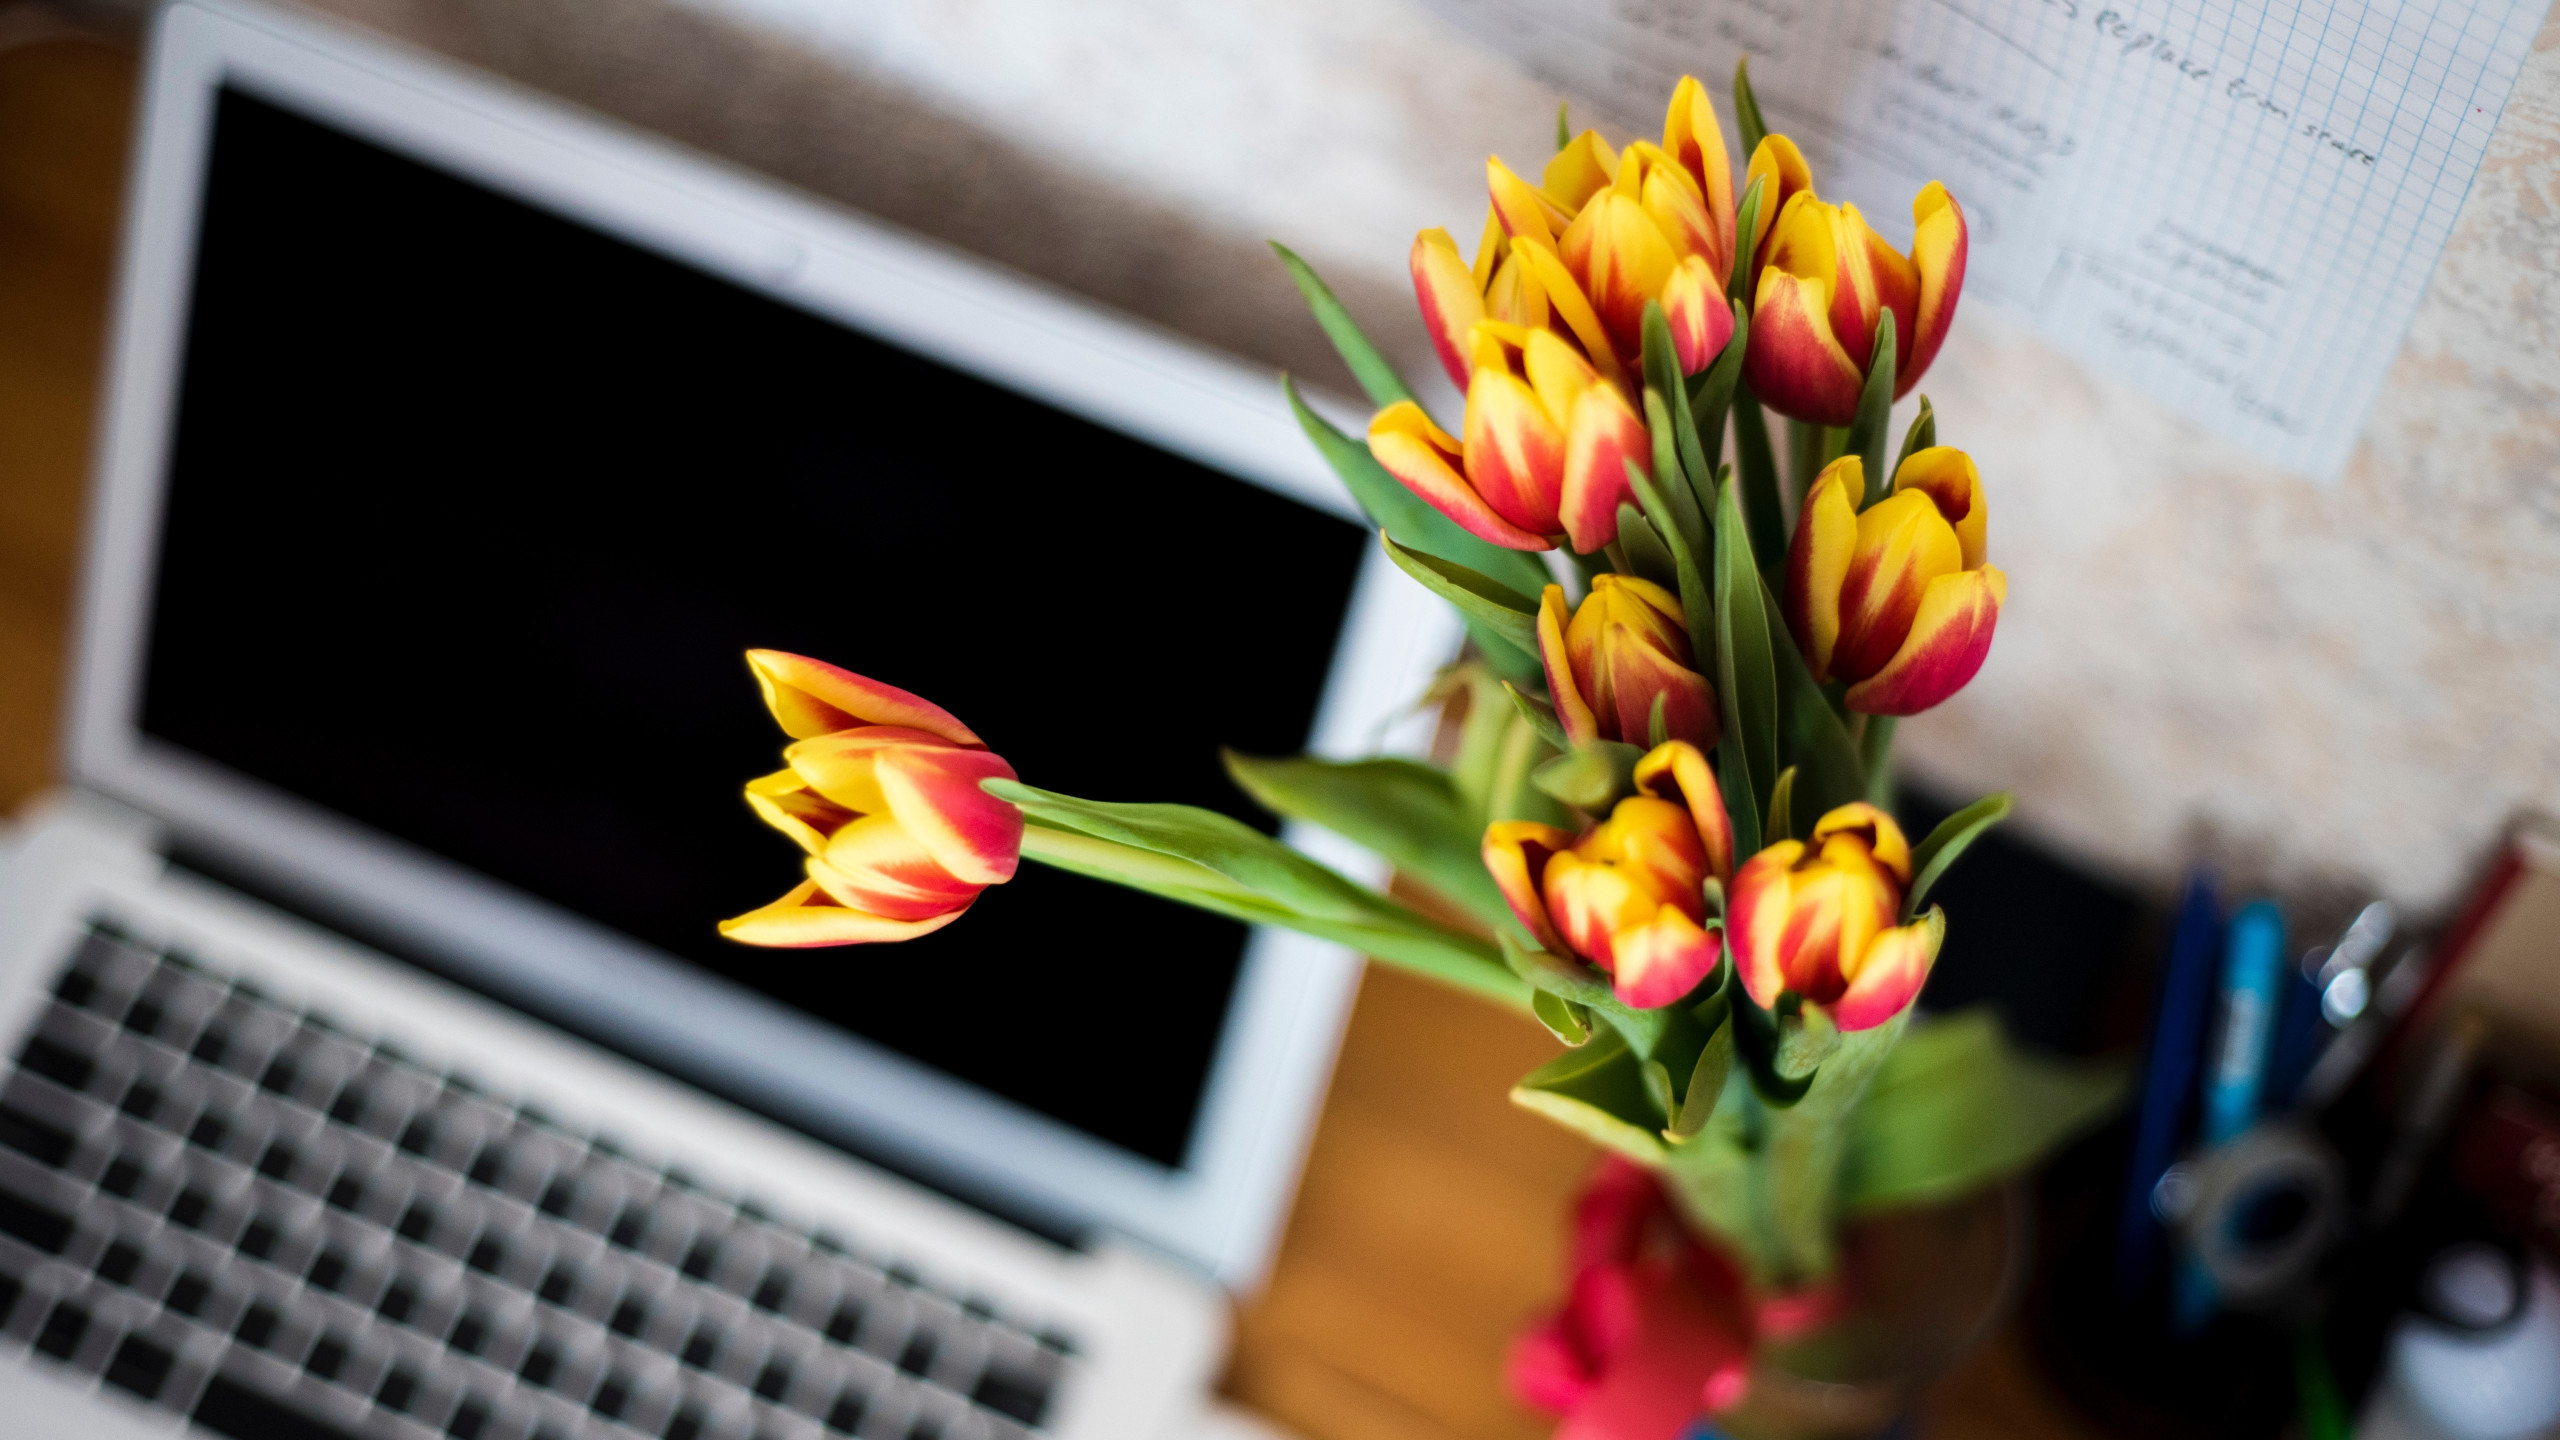 Laptop and tulips bouquet wallpaper 2560x1440